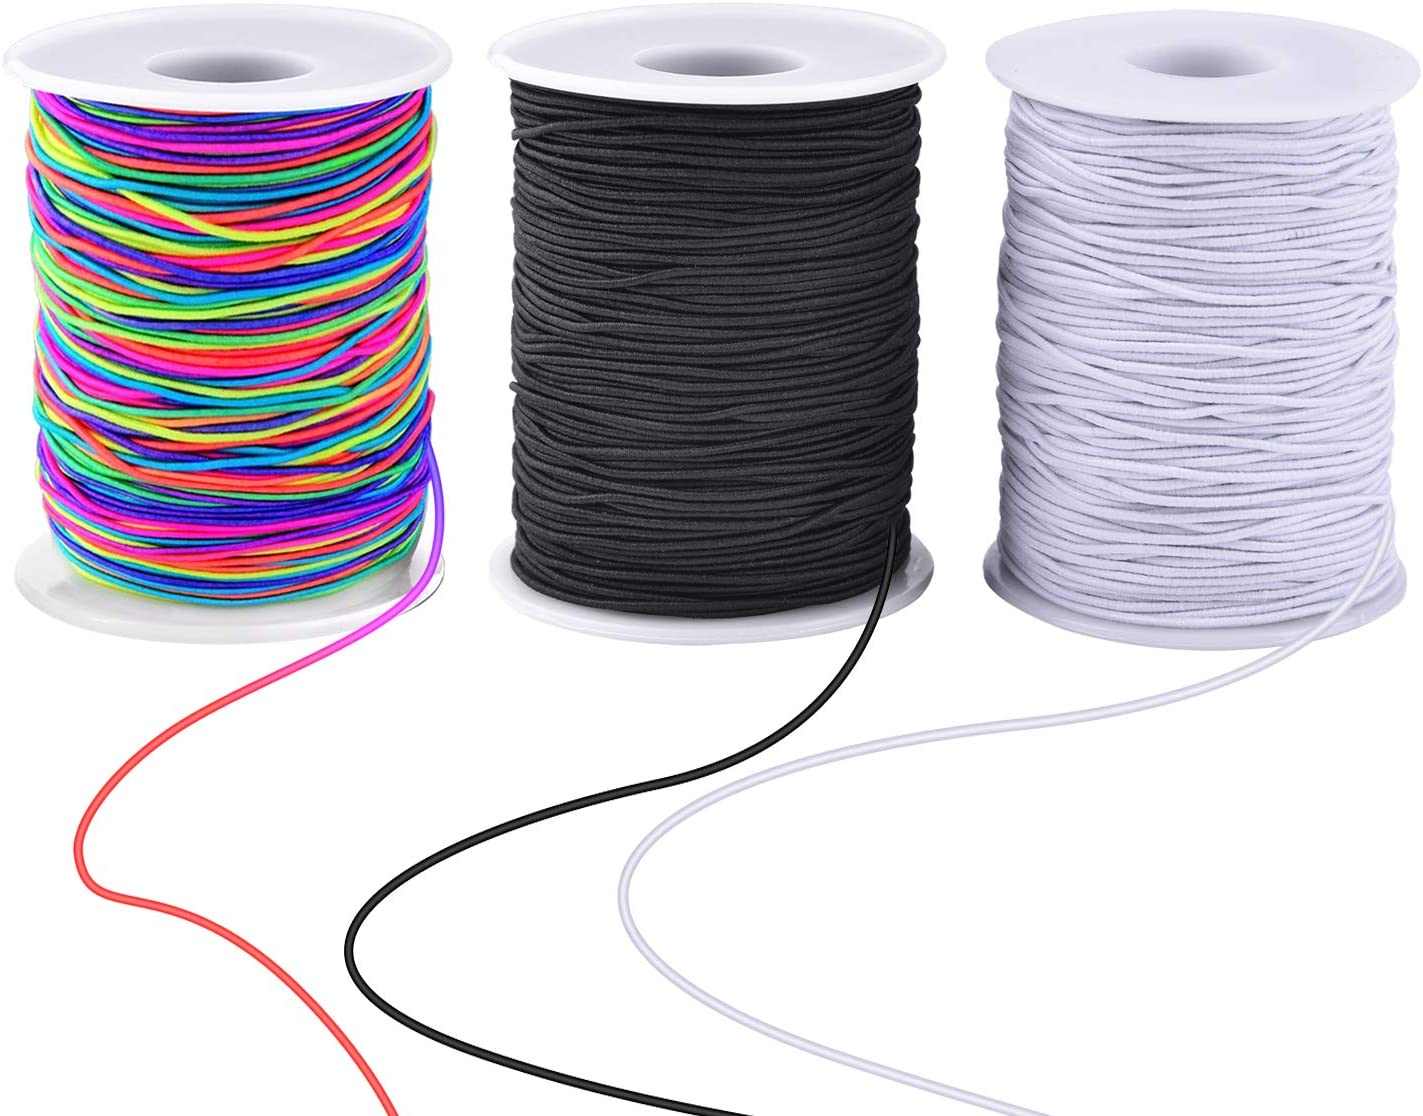 Polyester Cord 1 mm//100 m White Cord for Crafting Tools from the Manufacturer